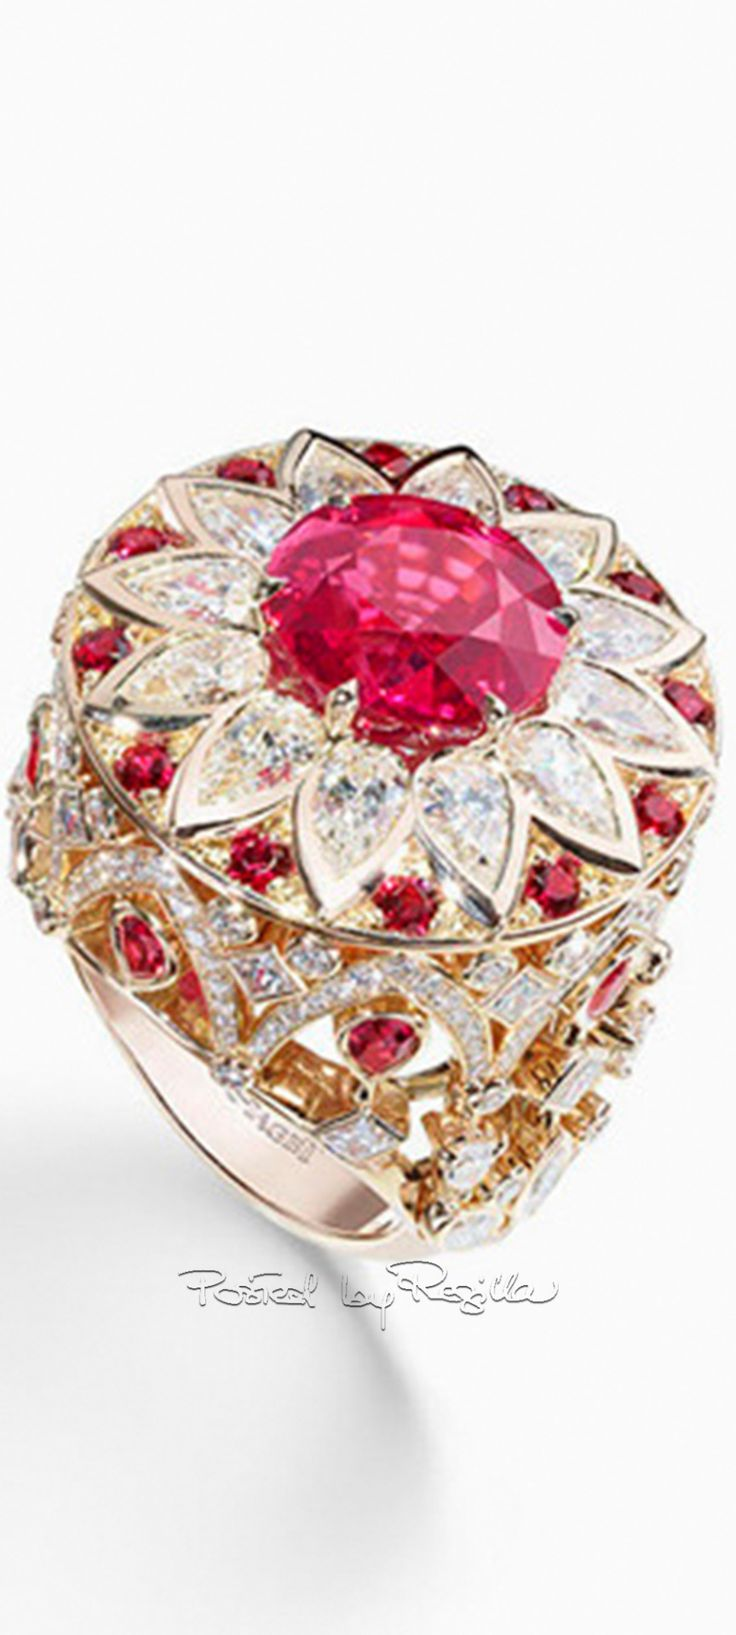 White gold diamond ring piaget luxury jewellery g34ut300 - Ring In Pink Gold Set With 1 Round Cut Red Spinel Approx